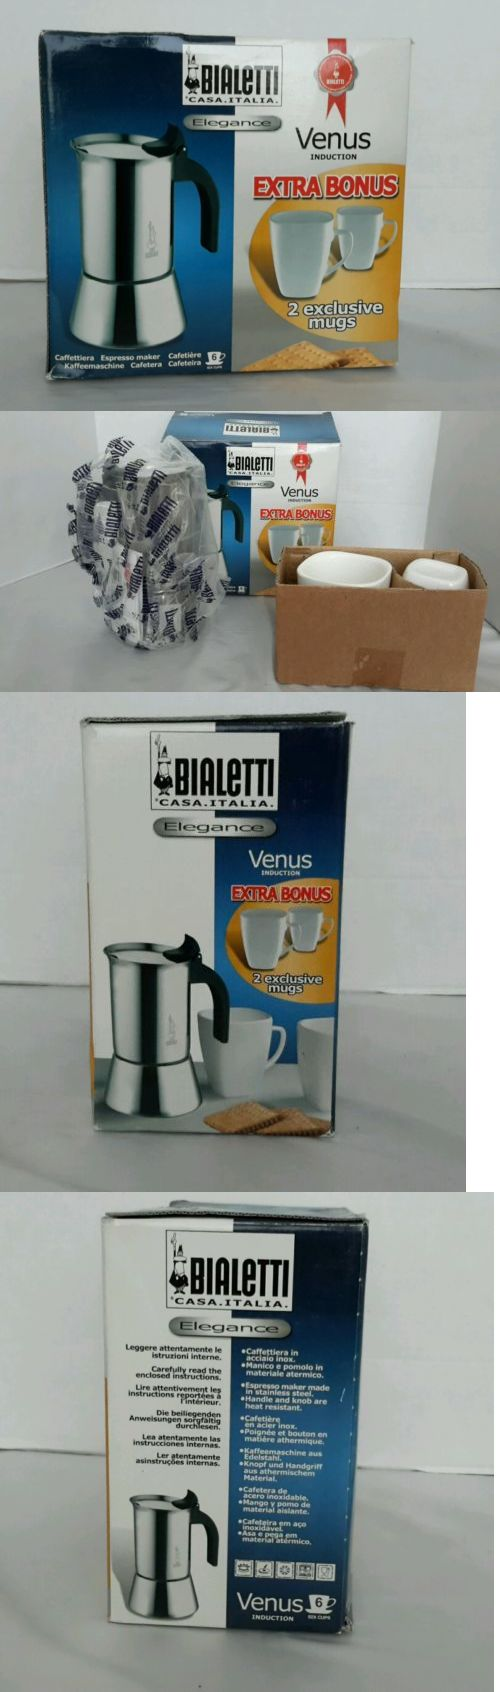 Percolators and Moka Pots 116012: Bialetti Elegance Caffettiera Espresso Maker Venus Induction 6 Cups With 2 Mugs -> BUY IT NOW ONLY: $44.99 on eBay!